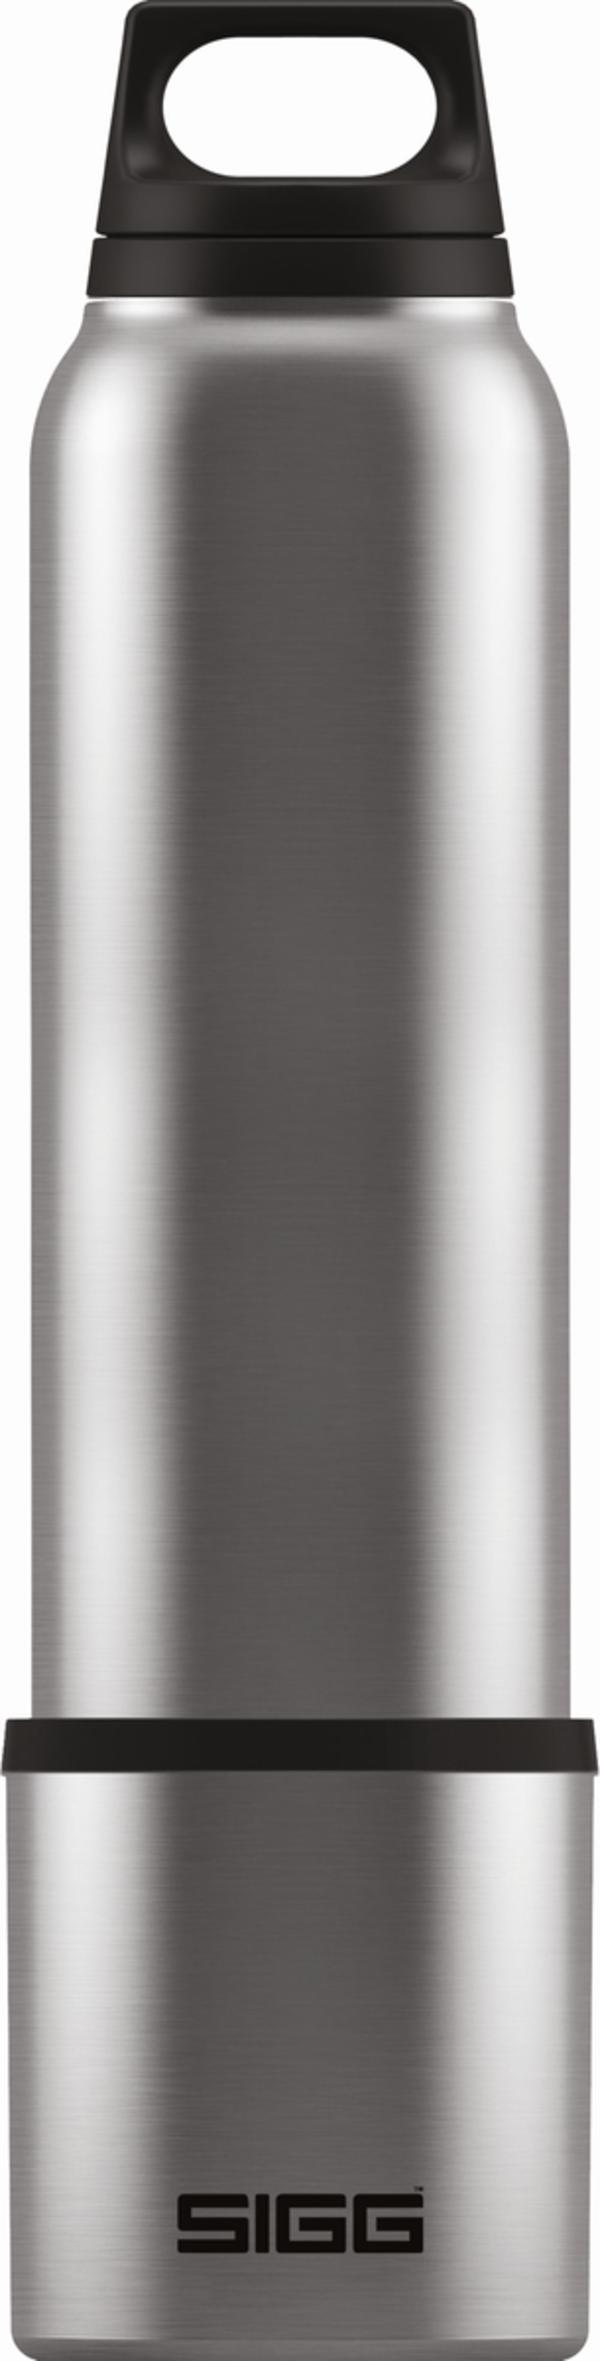 SIGG Trinkflasche Hot & Cold Brushed mit Cup 1l